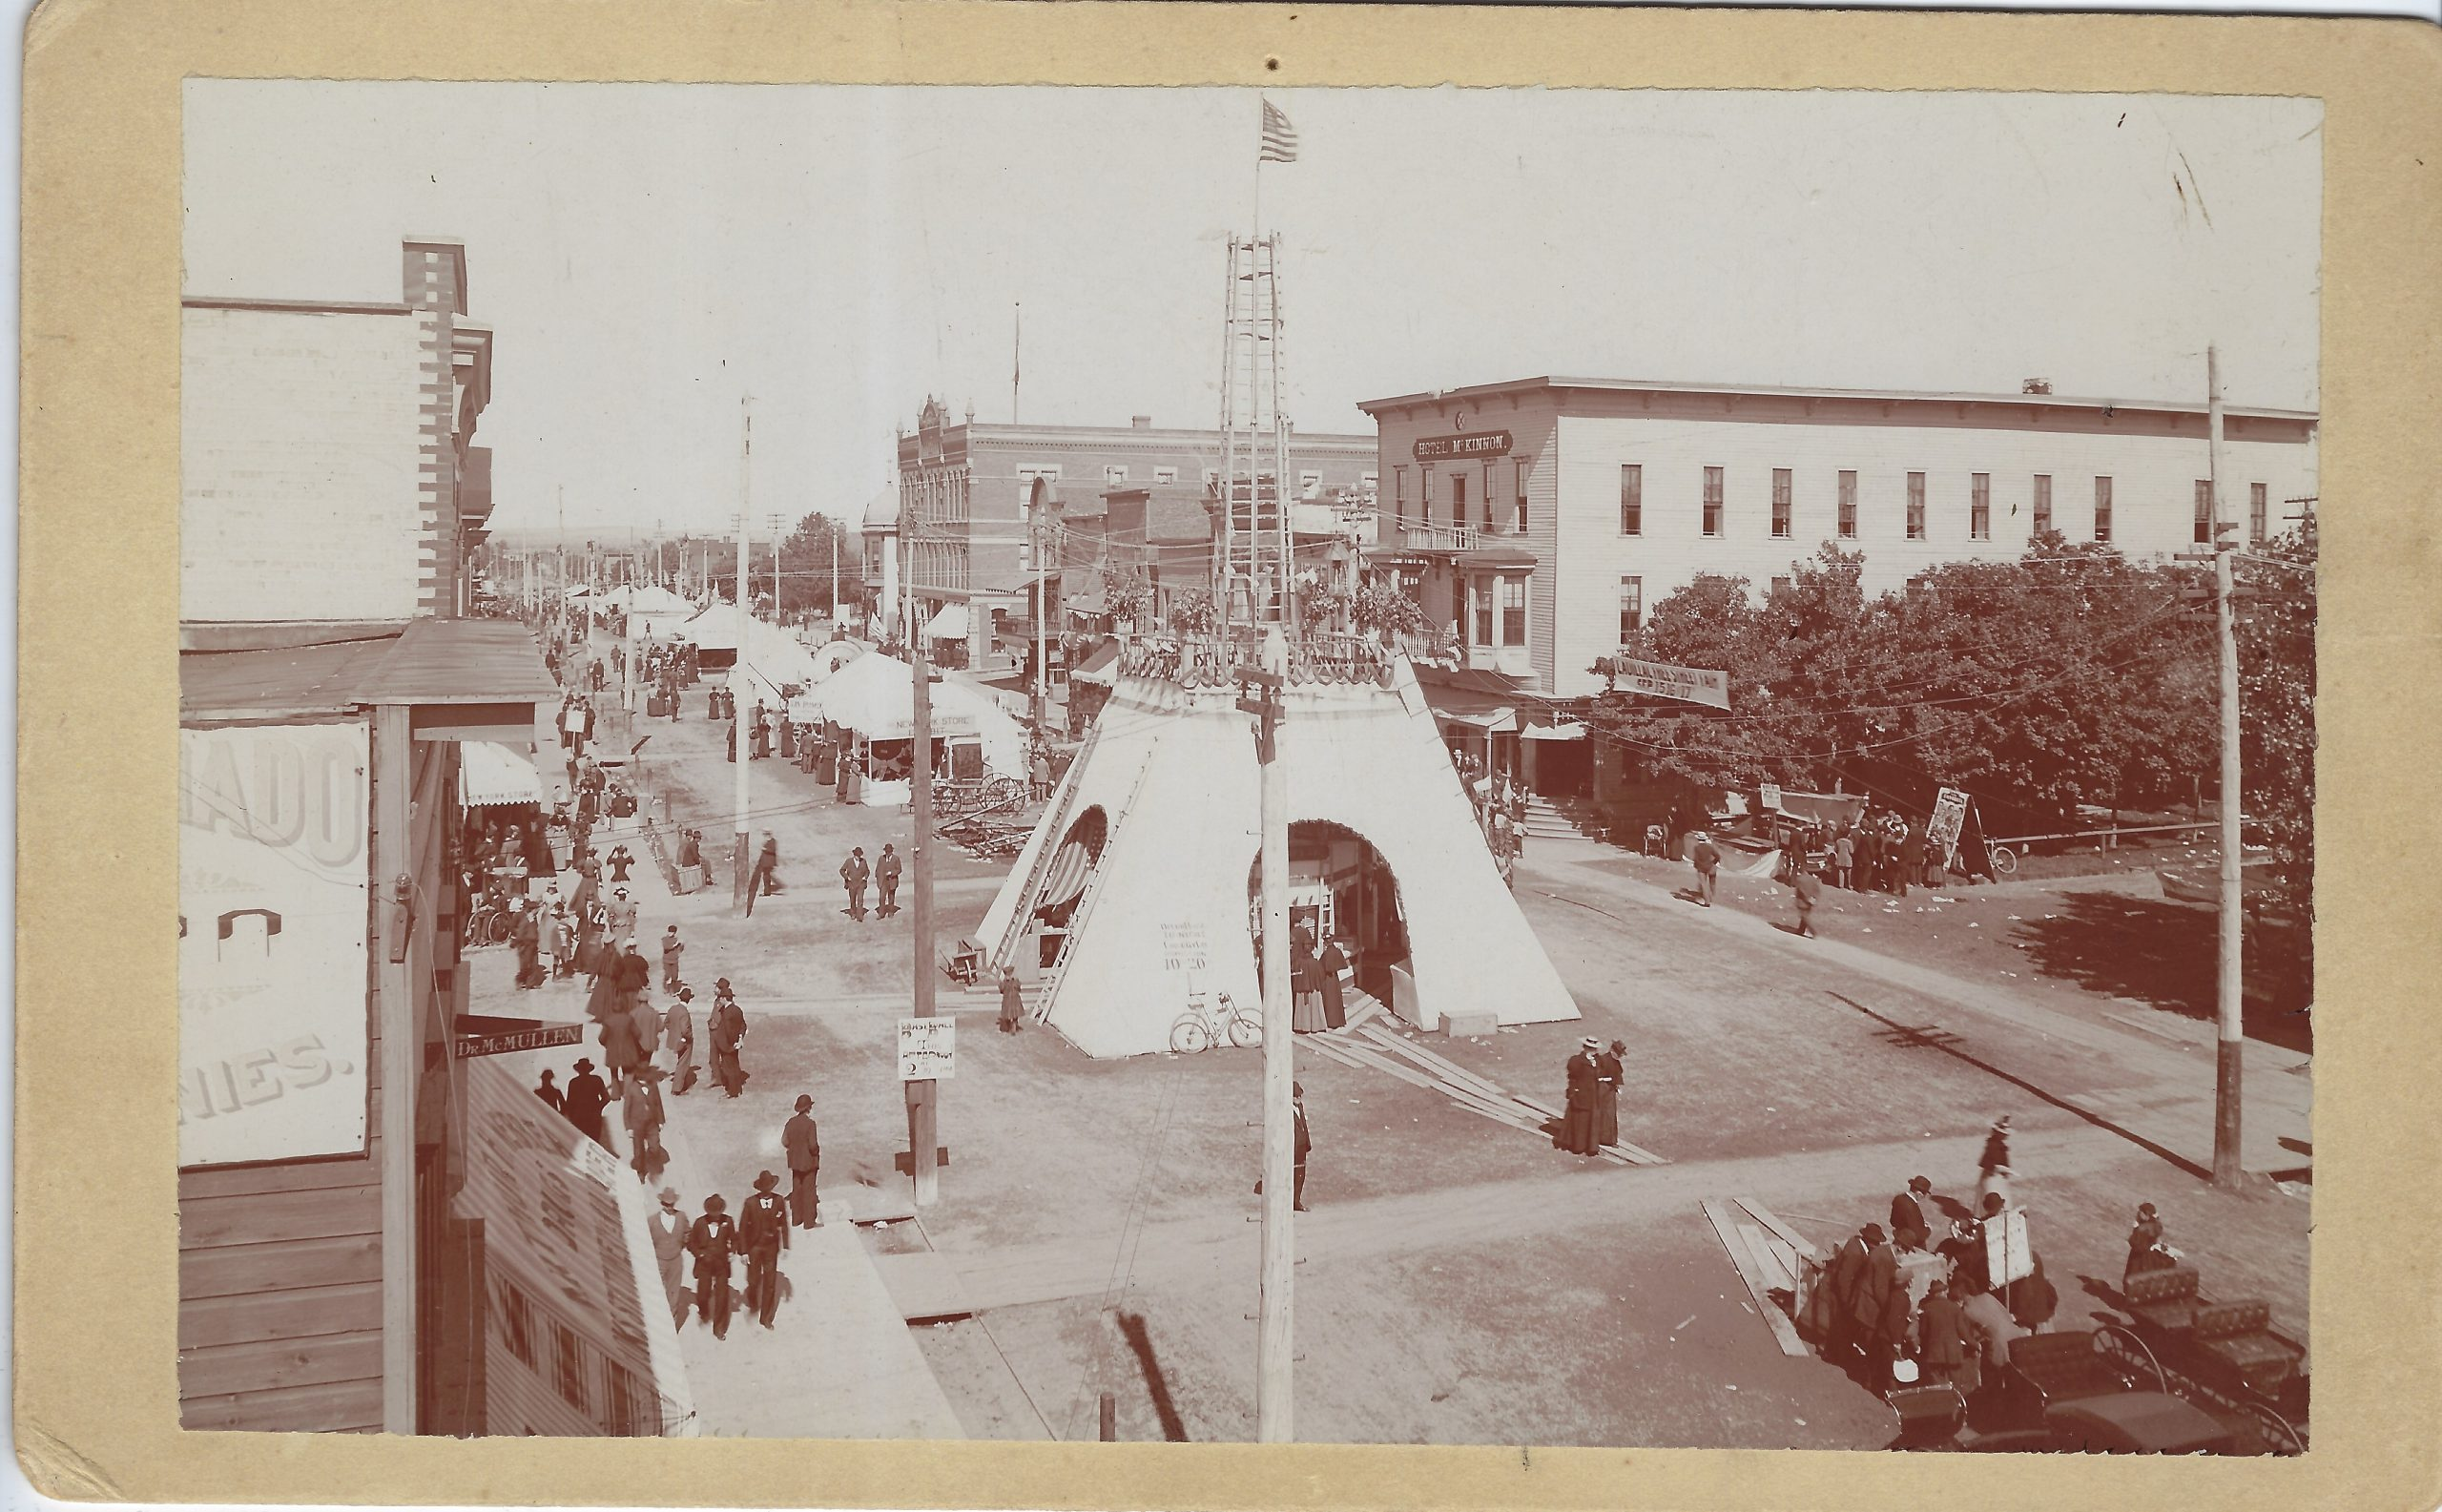 Cadillac – Parade – Free Fair on the corner of Harris and Mitchell 1897 09 15 (8) – Copy